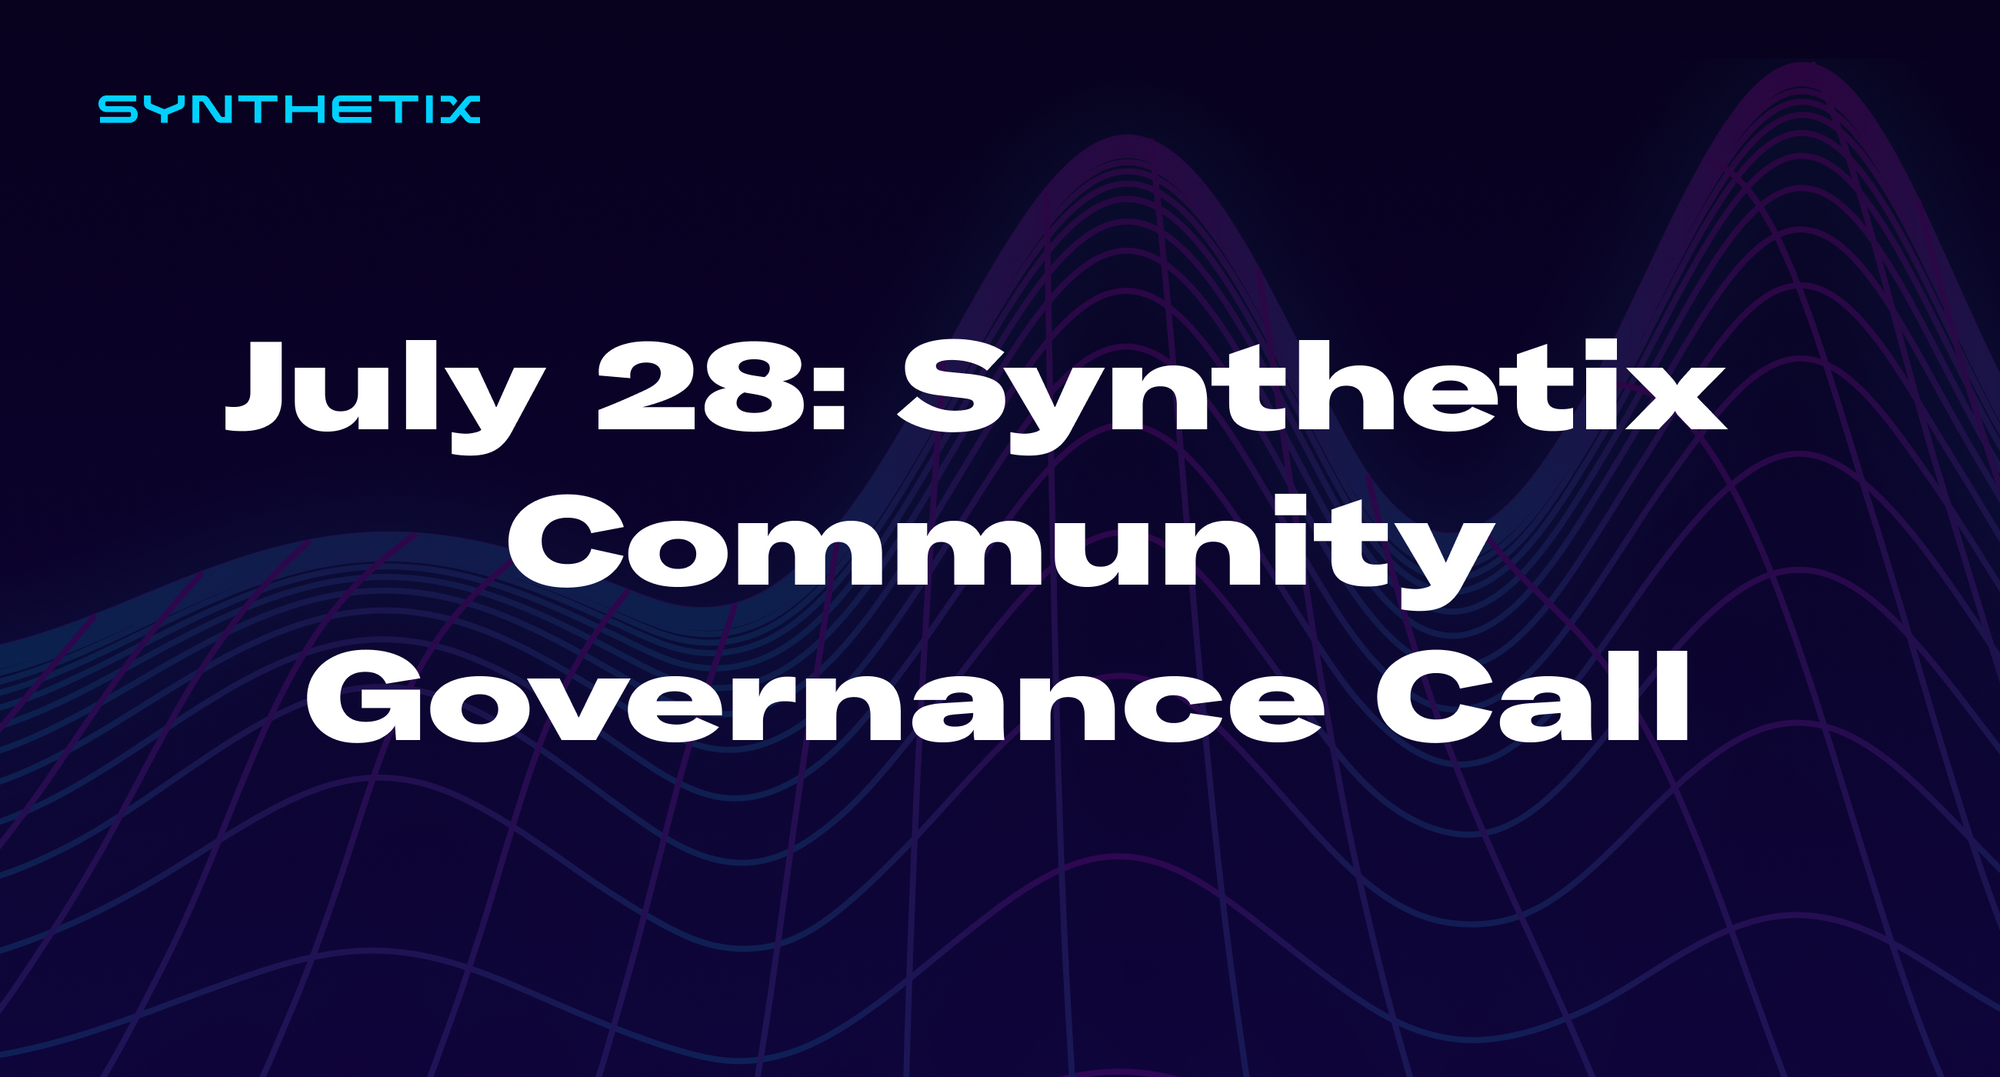 Come join us on July 28 for the next Synthetix community governance call!